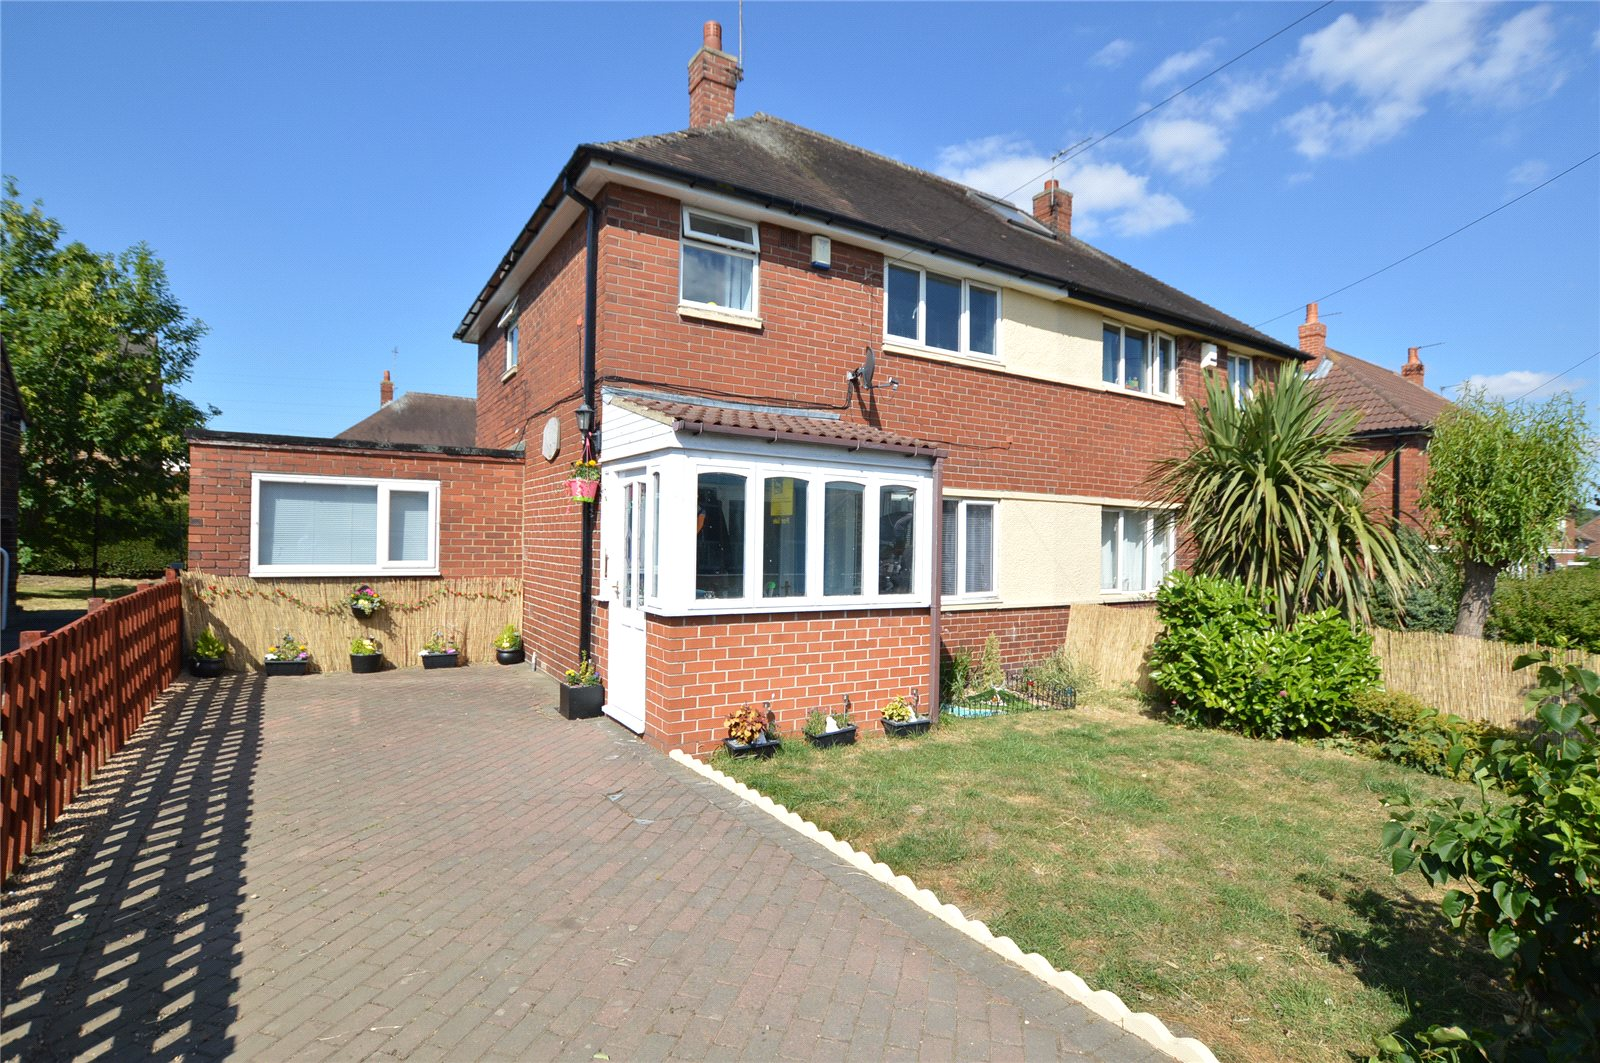 property for sale in morley, exterior, semi detached